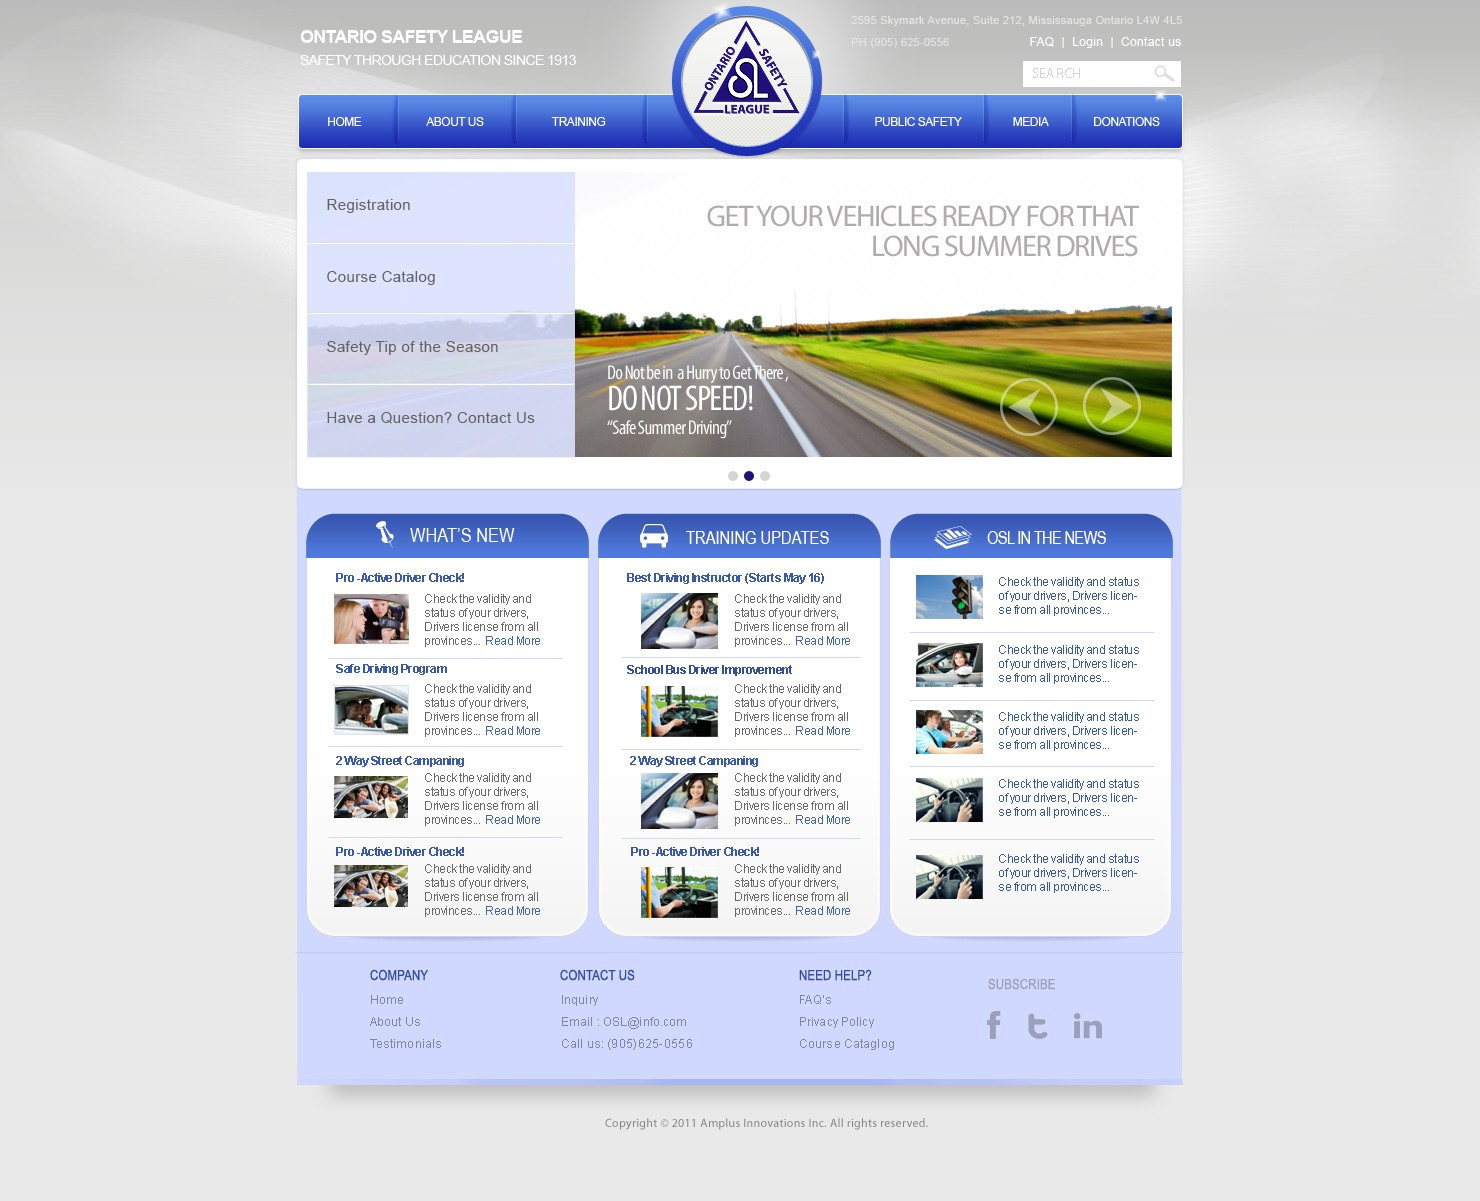 Help Ontario Safety League with a new website design